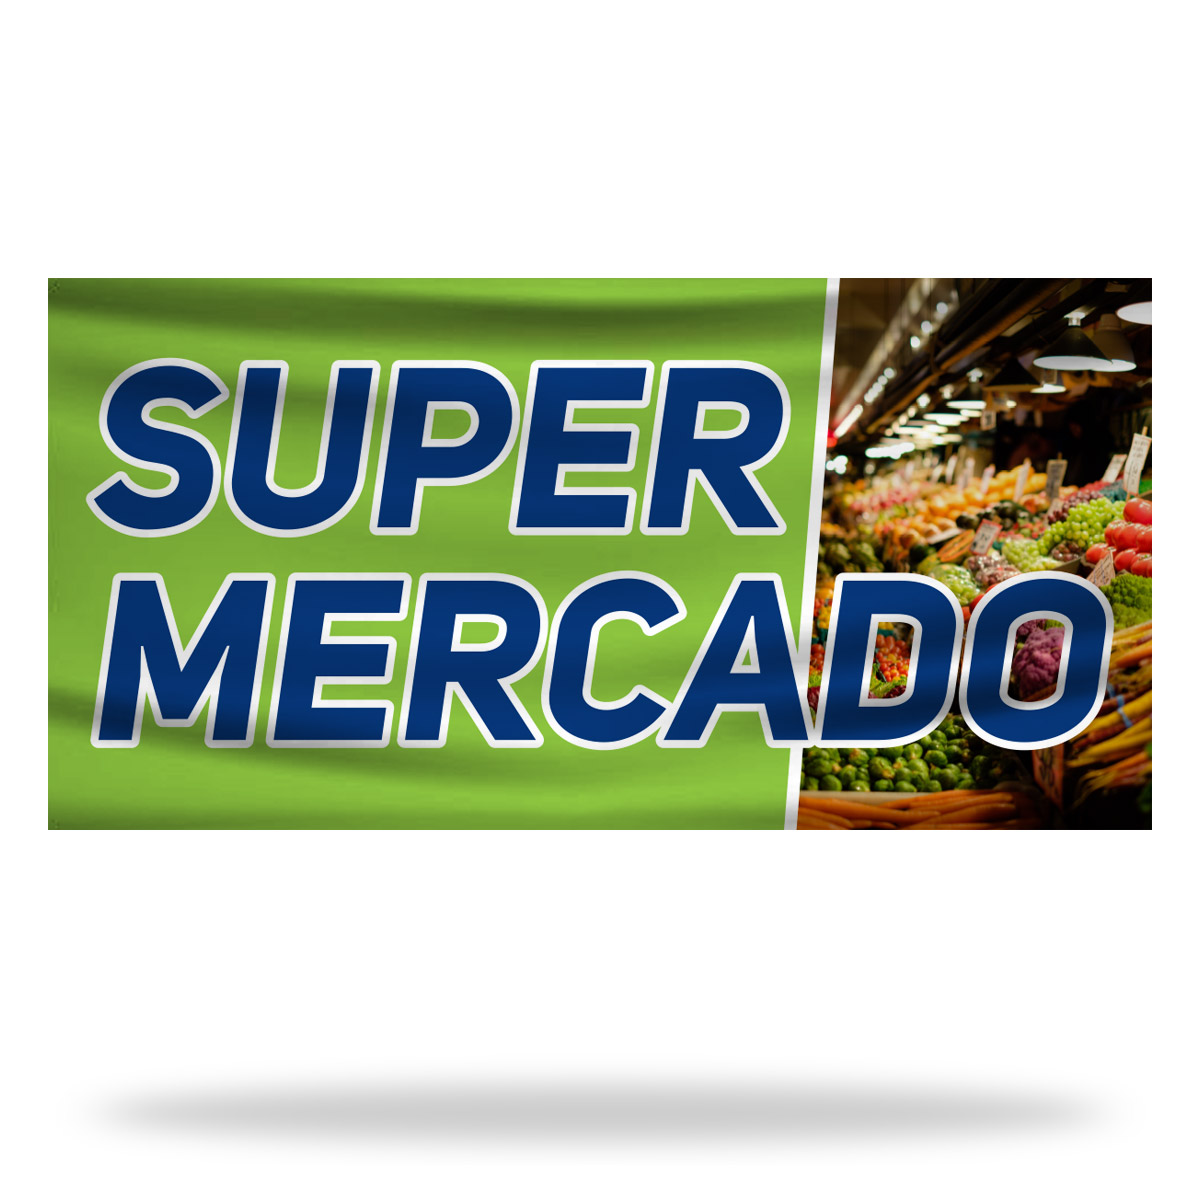 Spanish Supermarket Flags & Banners Design 02